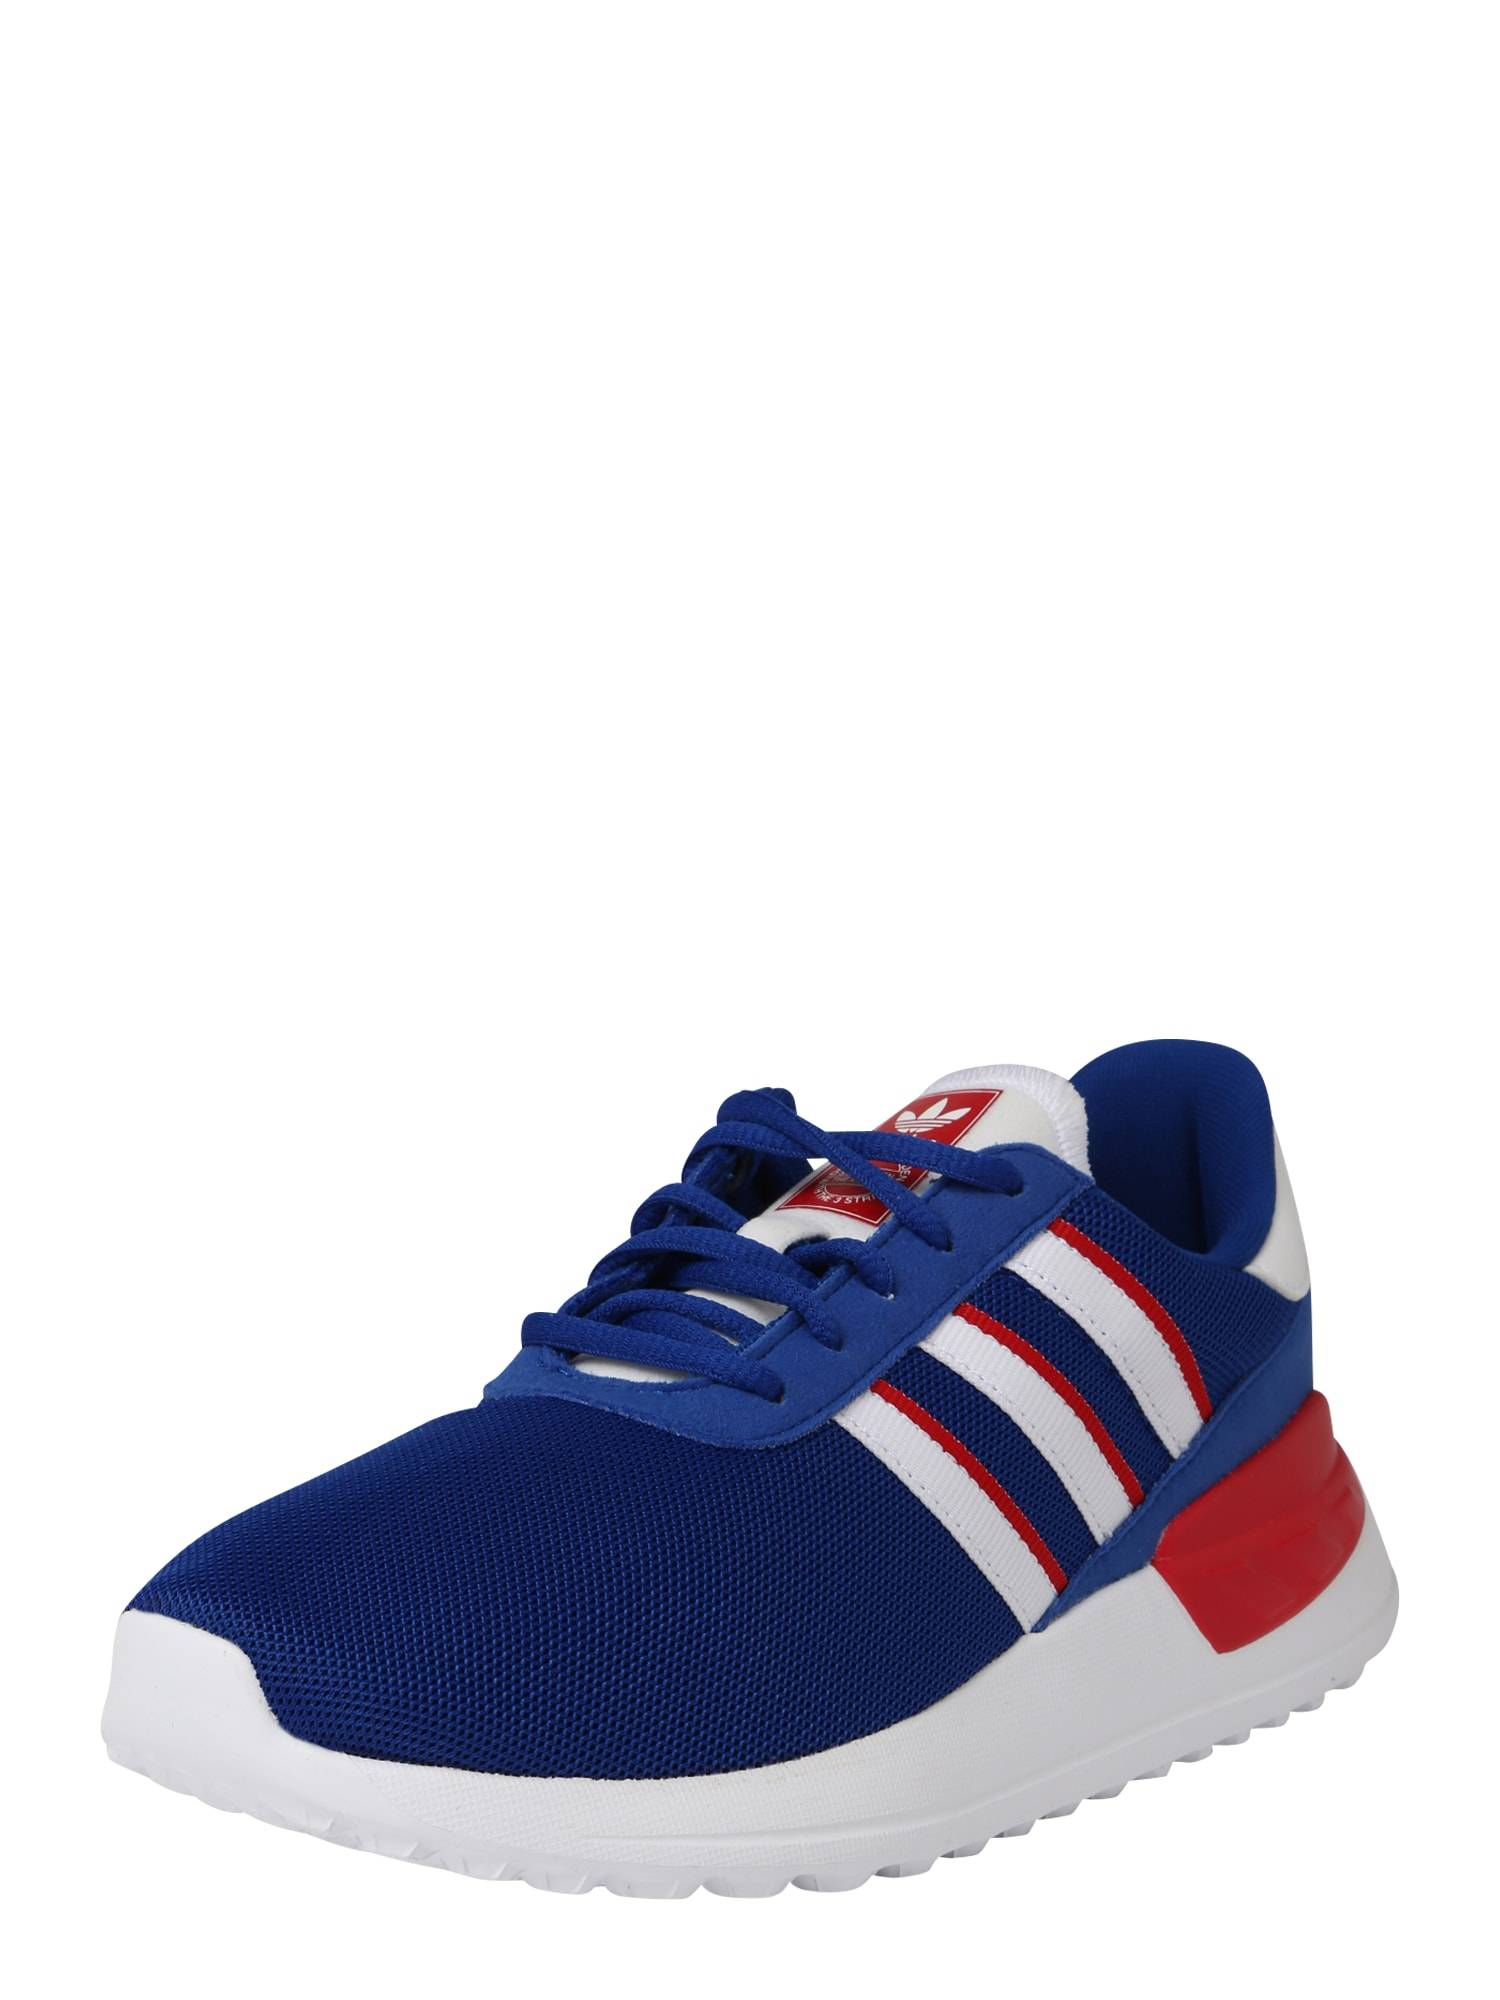 ADIDAS ORIGINALS Baskets 'LA TRAINER LITE C'  - Bleu - Taille: 33 - boy